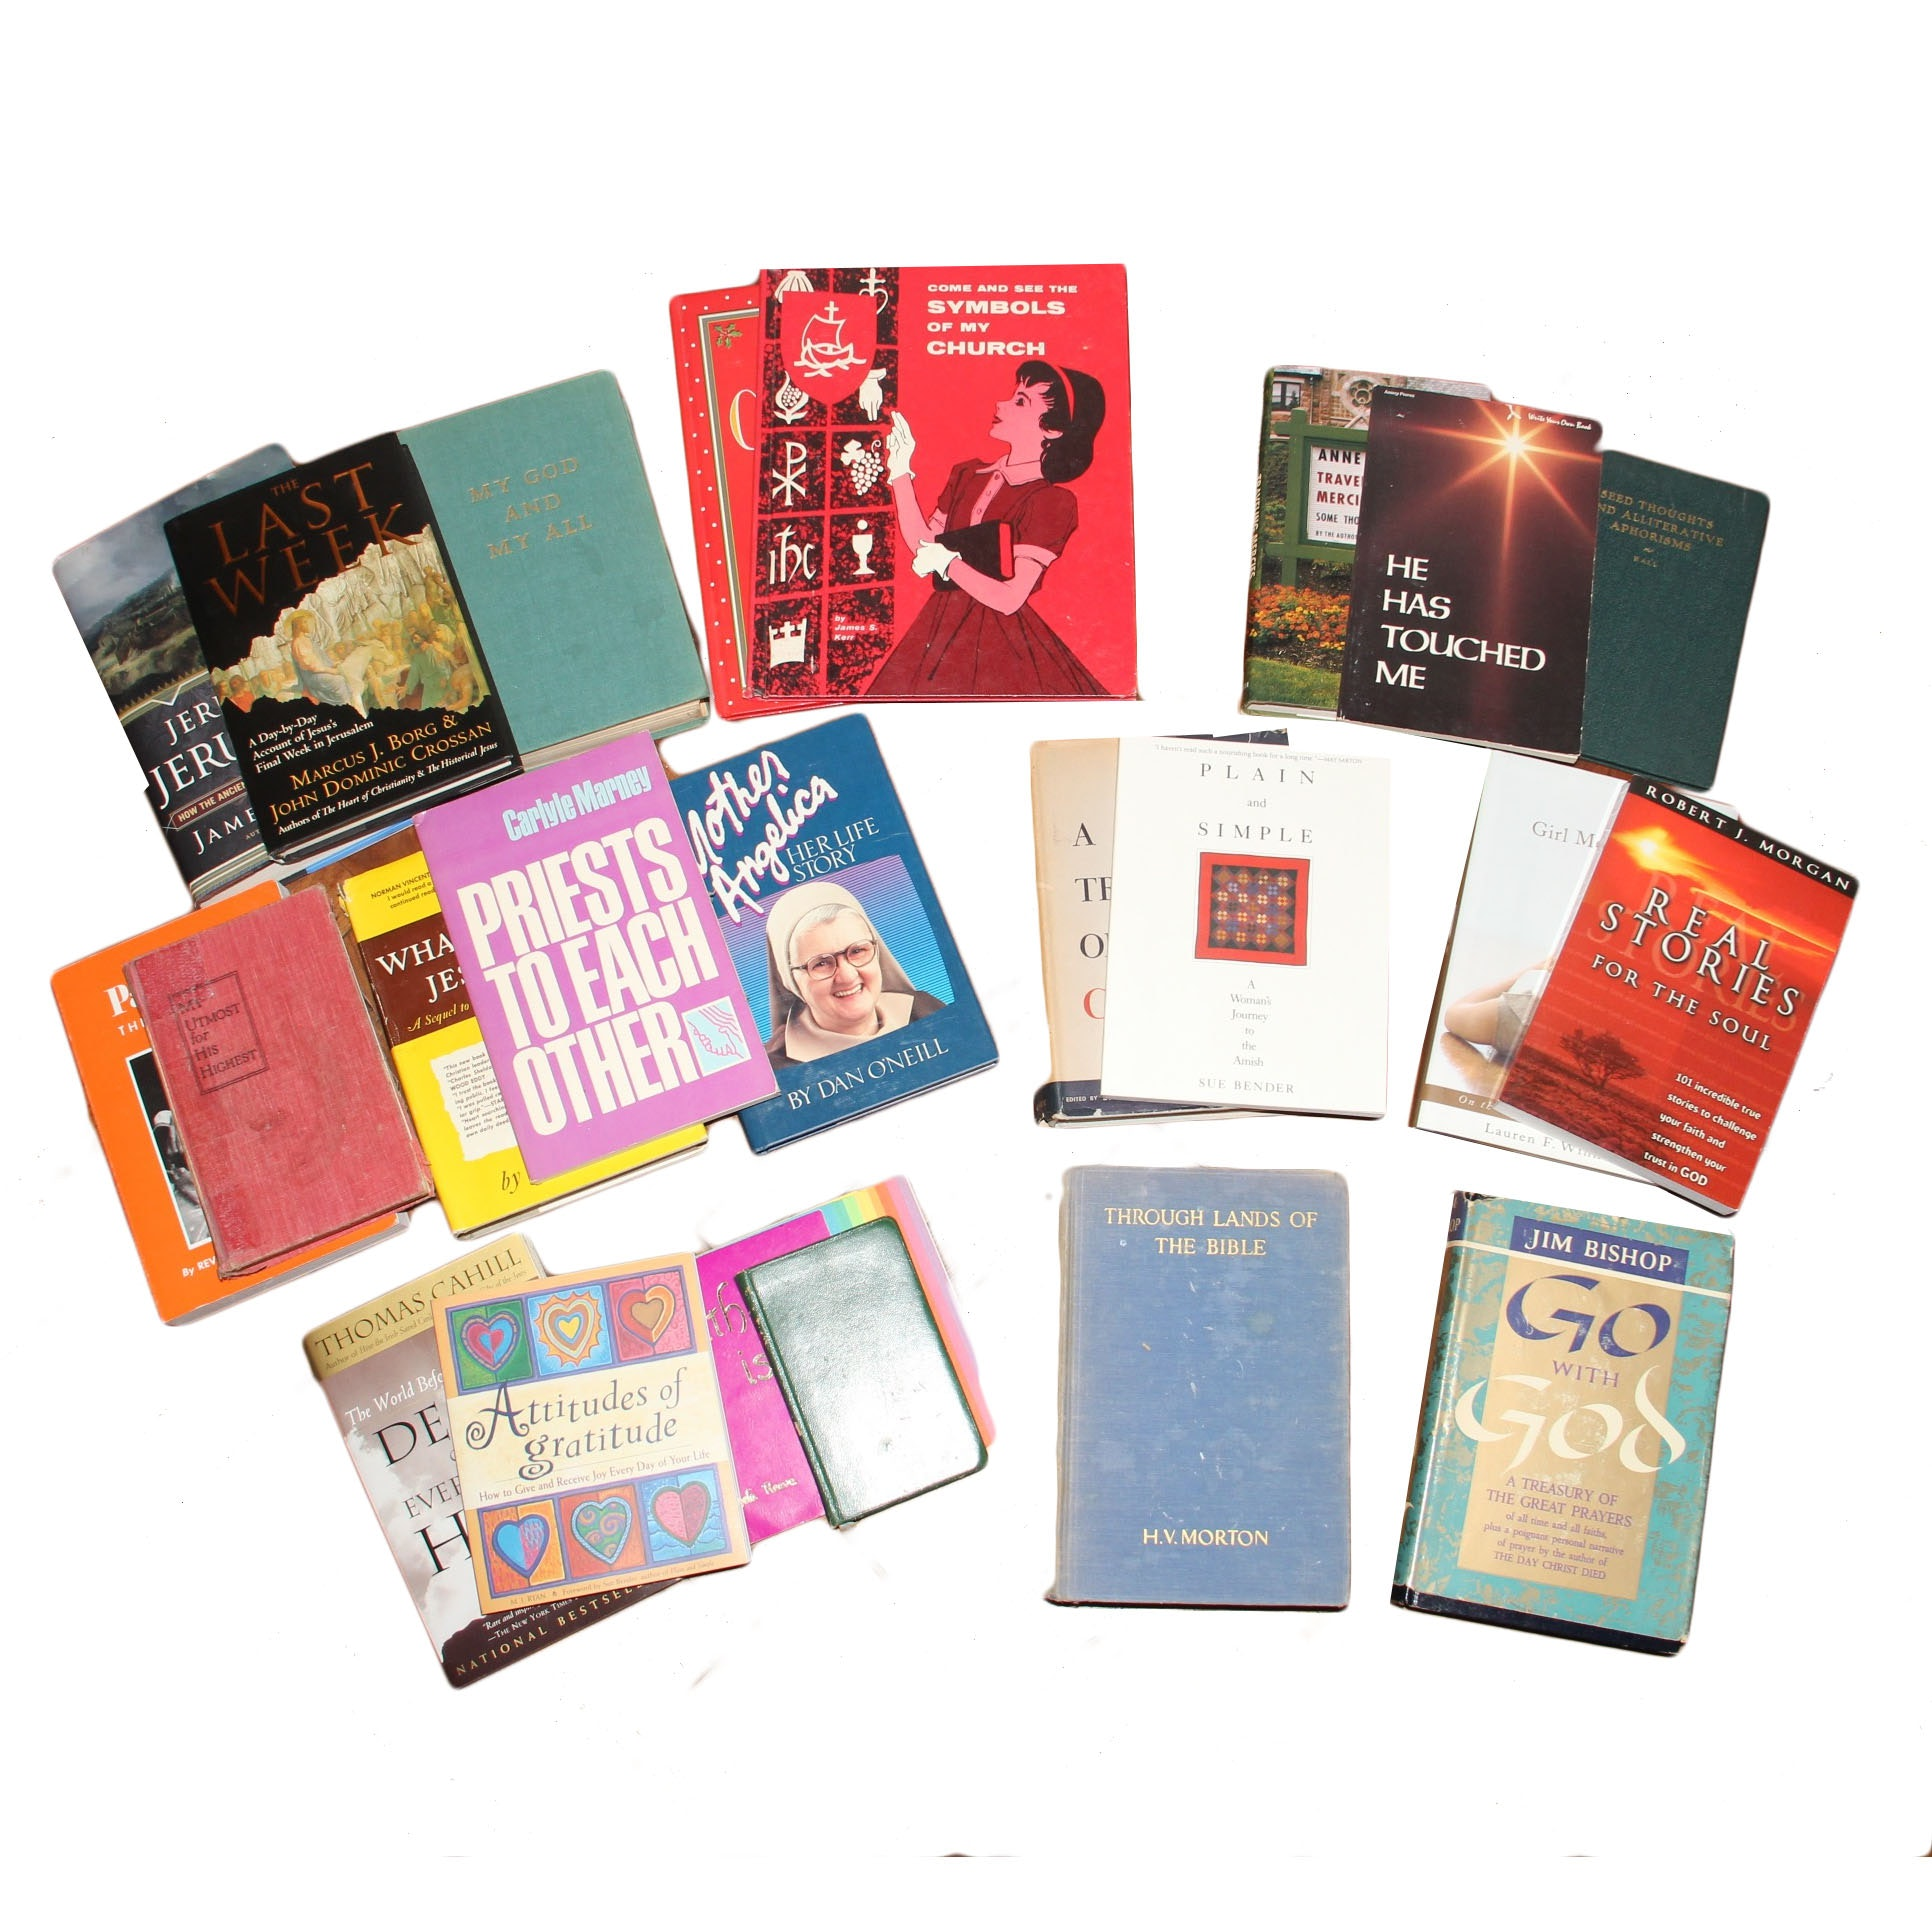 Assortment of Books on Religion and Faith